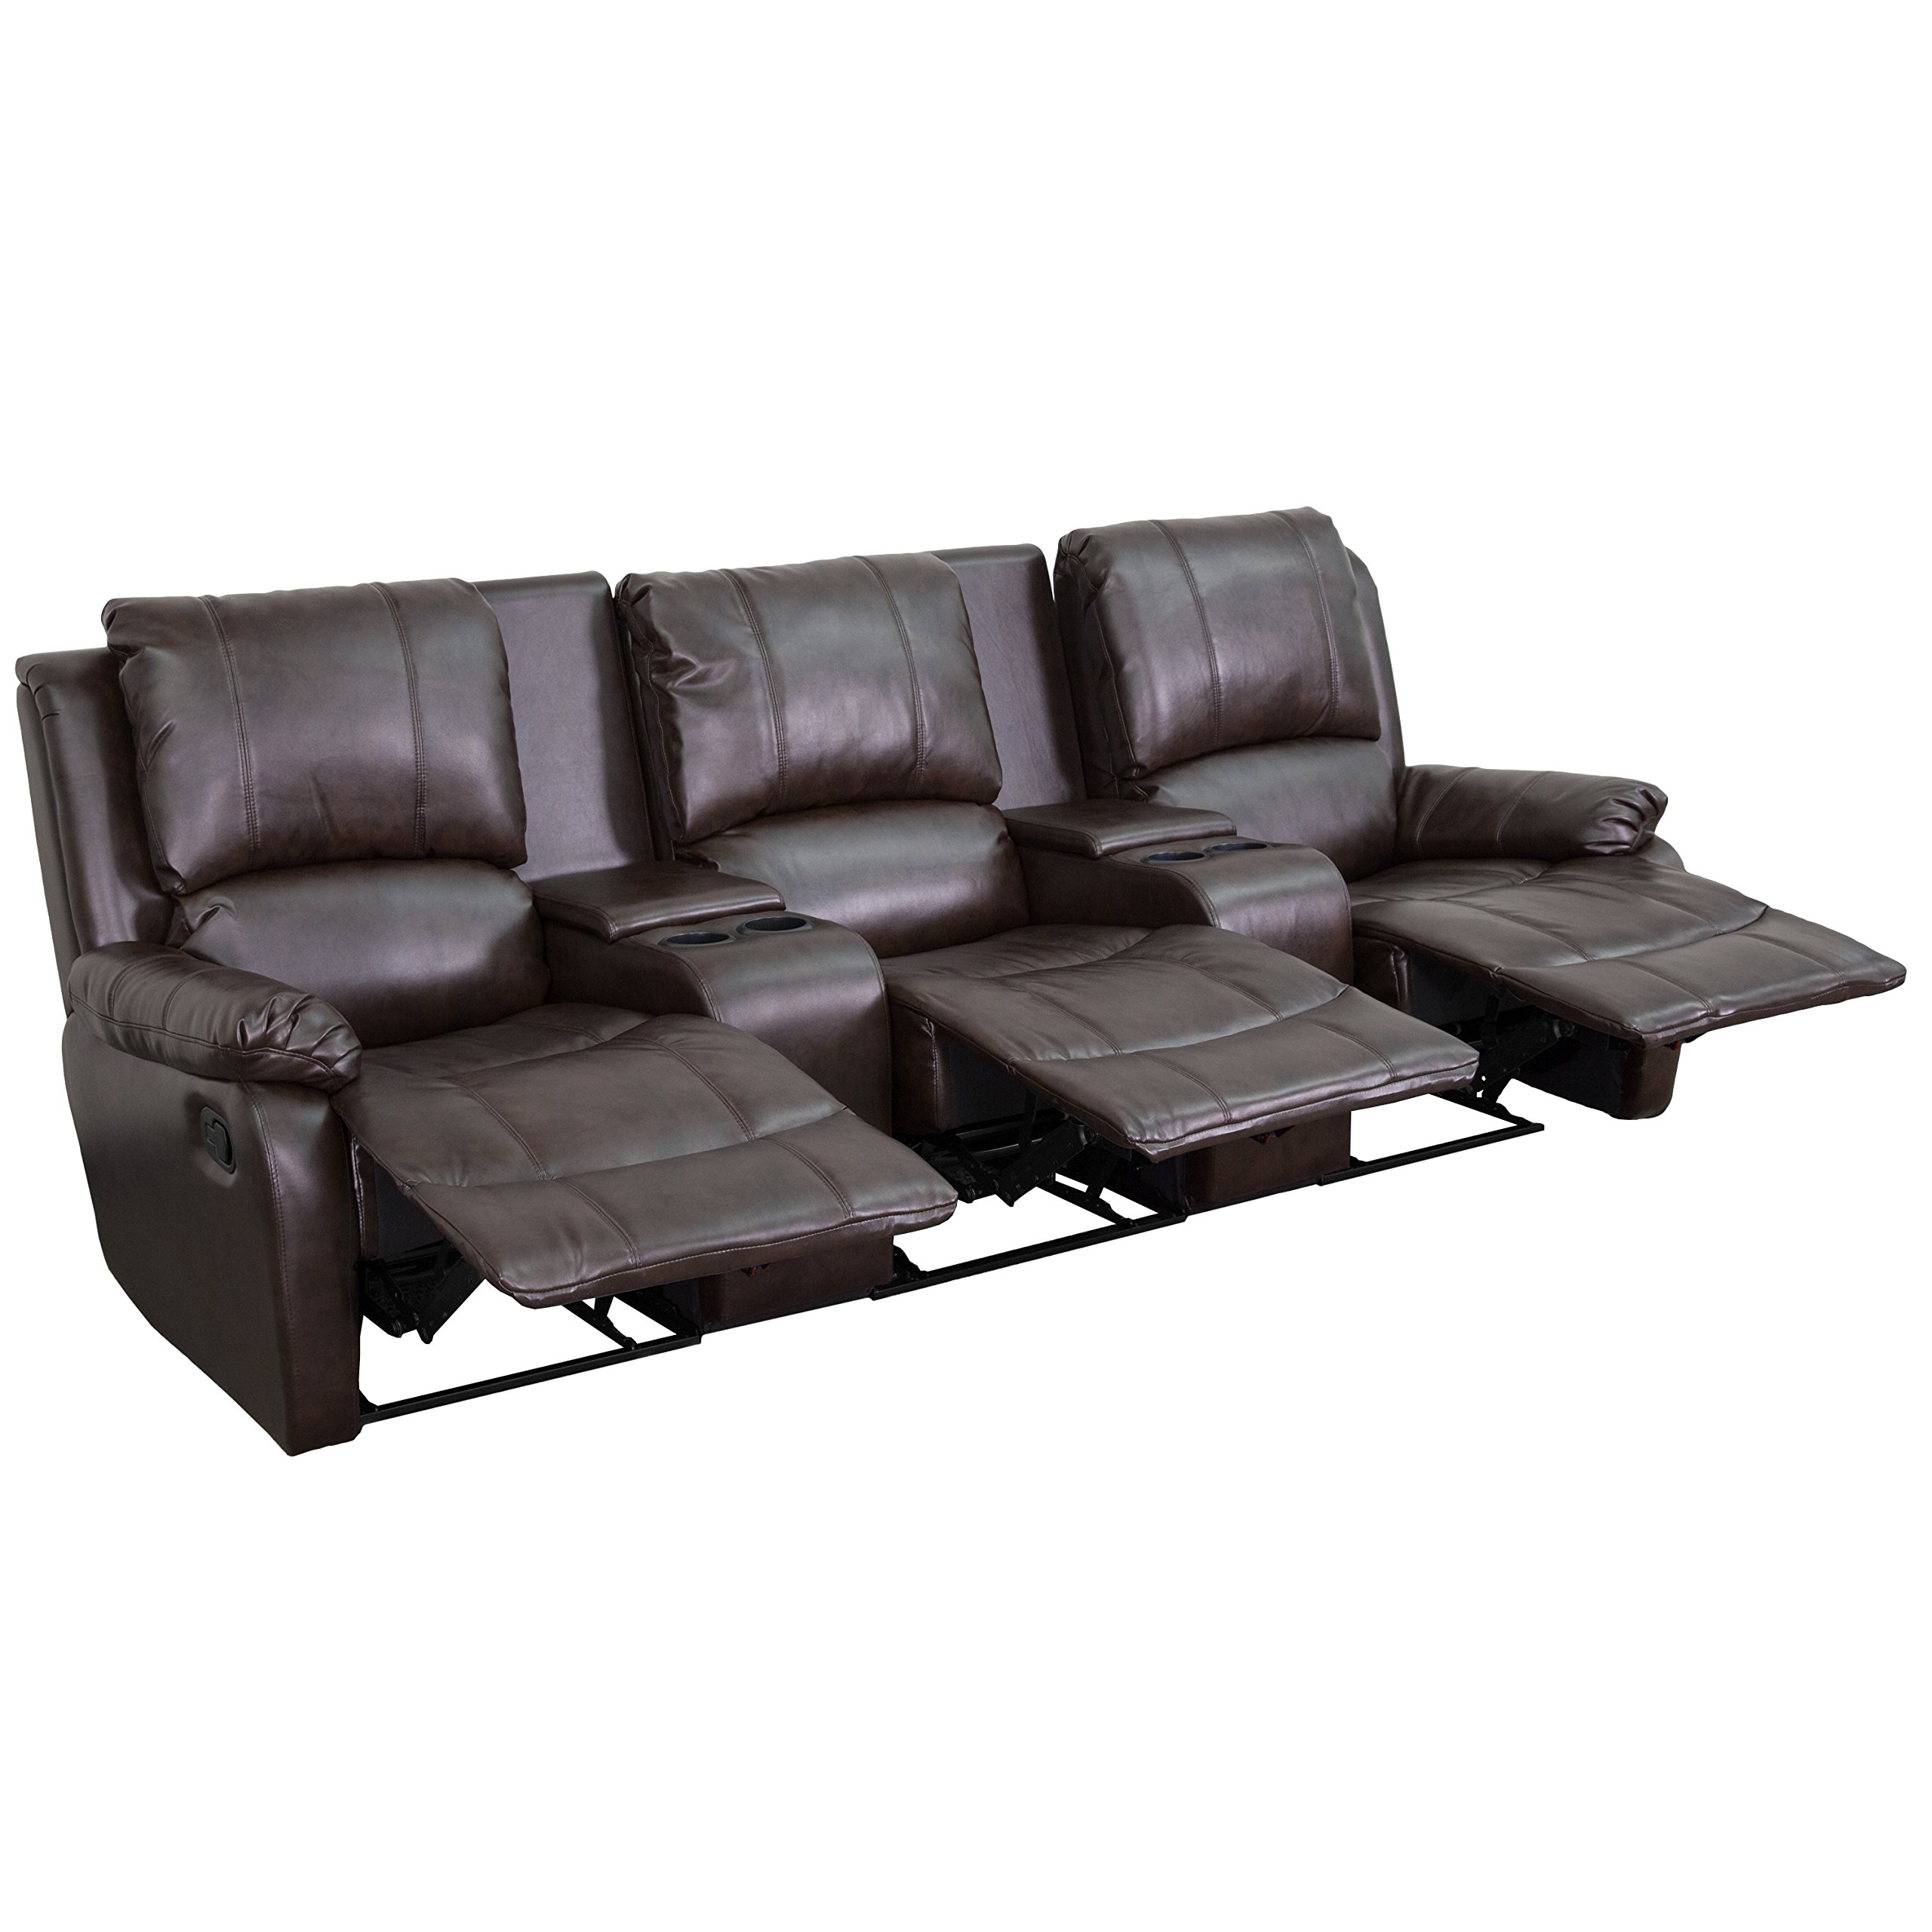 Winston Direct Cinema Series 3-Seat Reclining Pillow Back Brown Leather Theater Seating Unit with Cup Holders